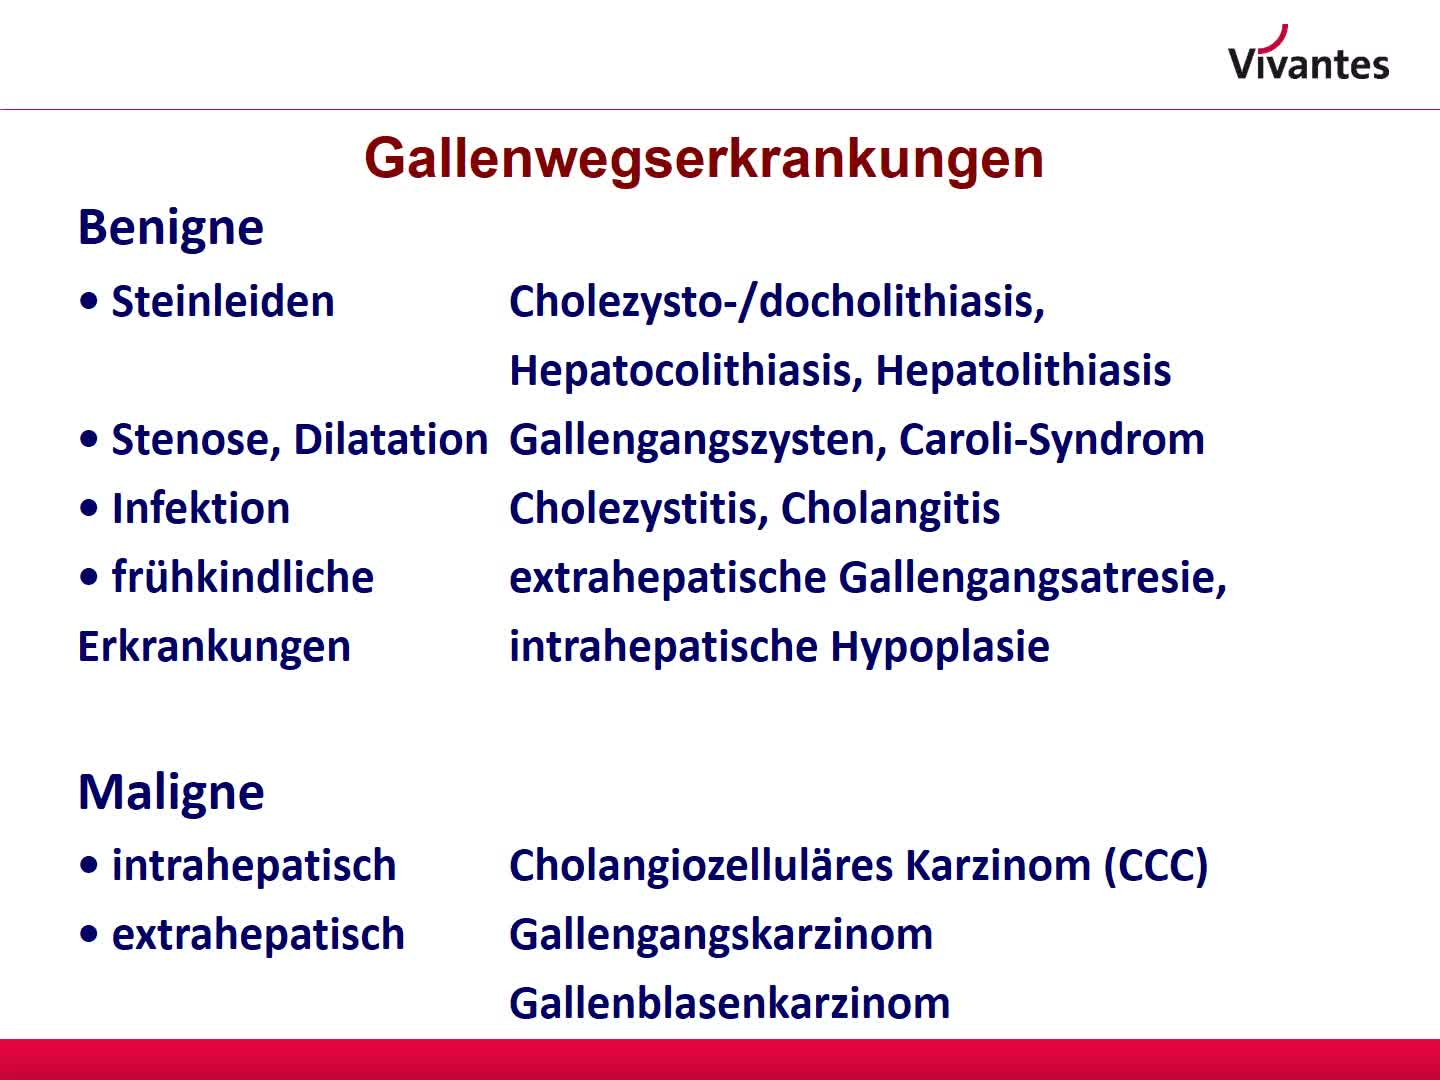 Gallenchirurgie